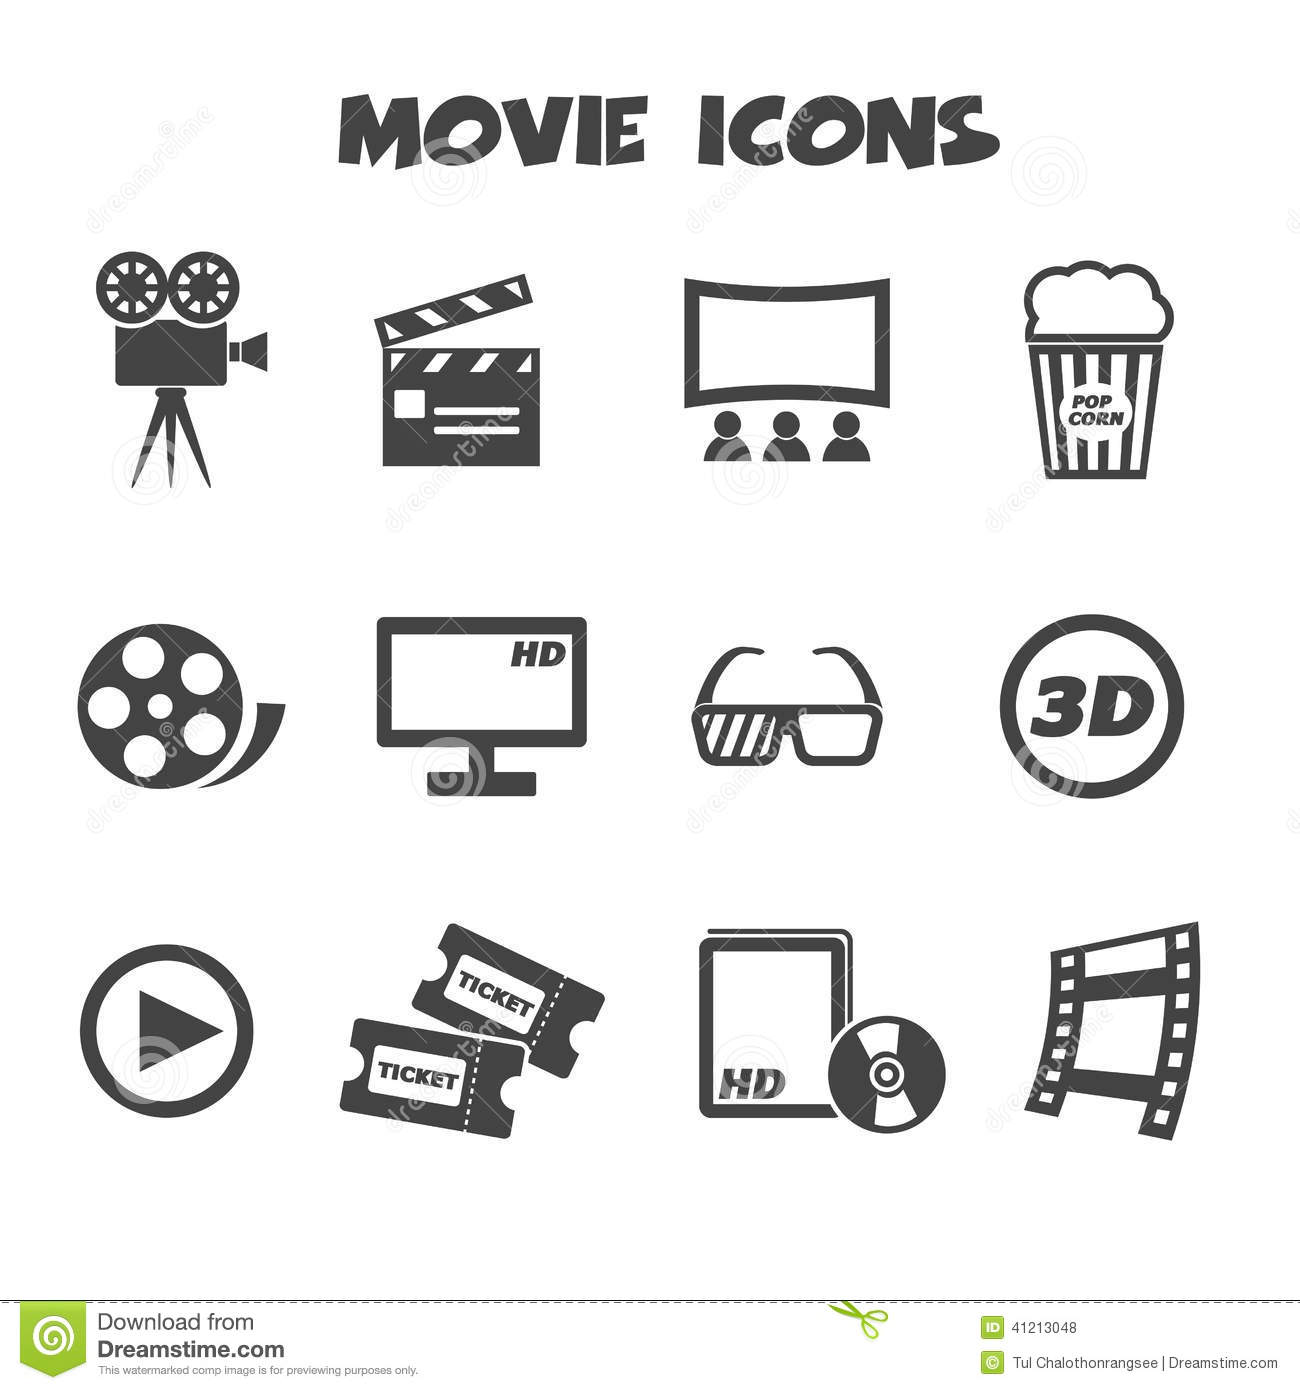 Movie company symbols